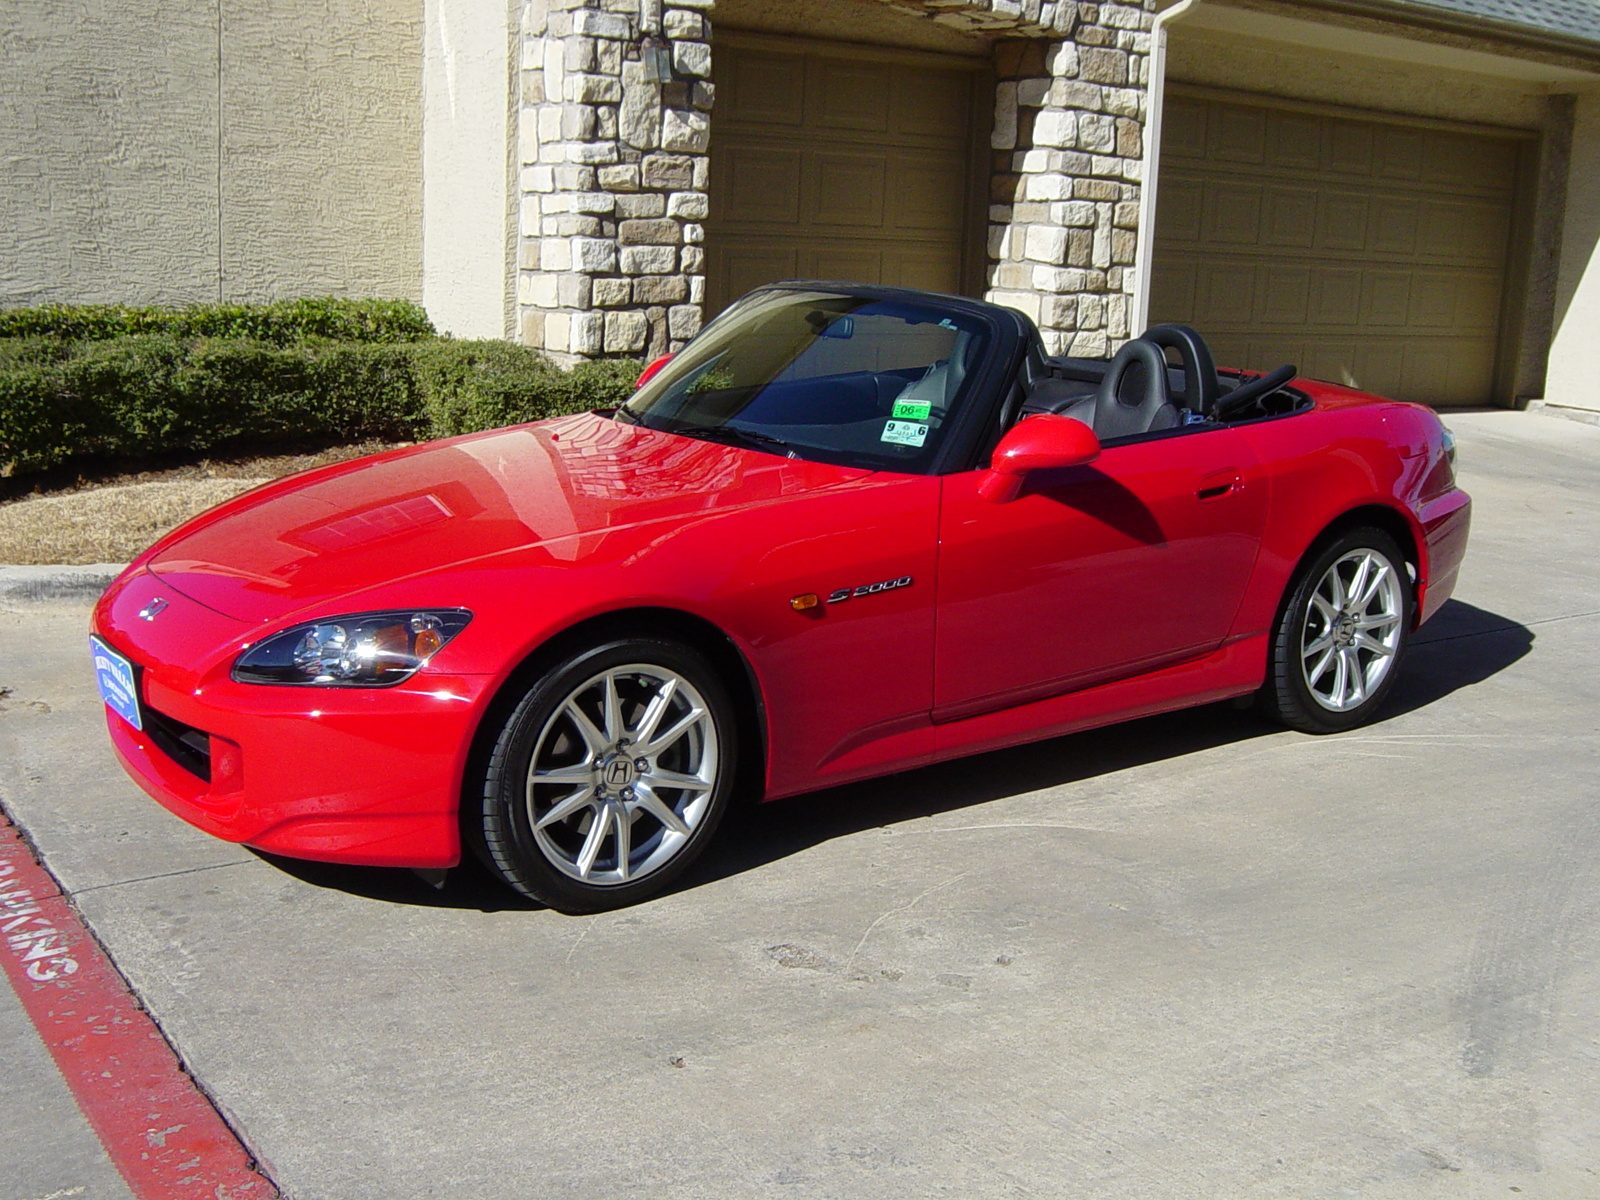 2005_honda_s2000_base-pic-37851.jpeg